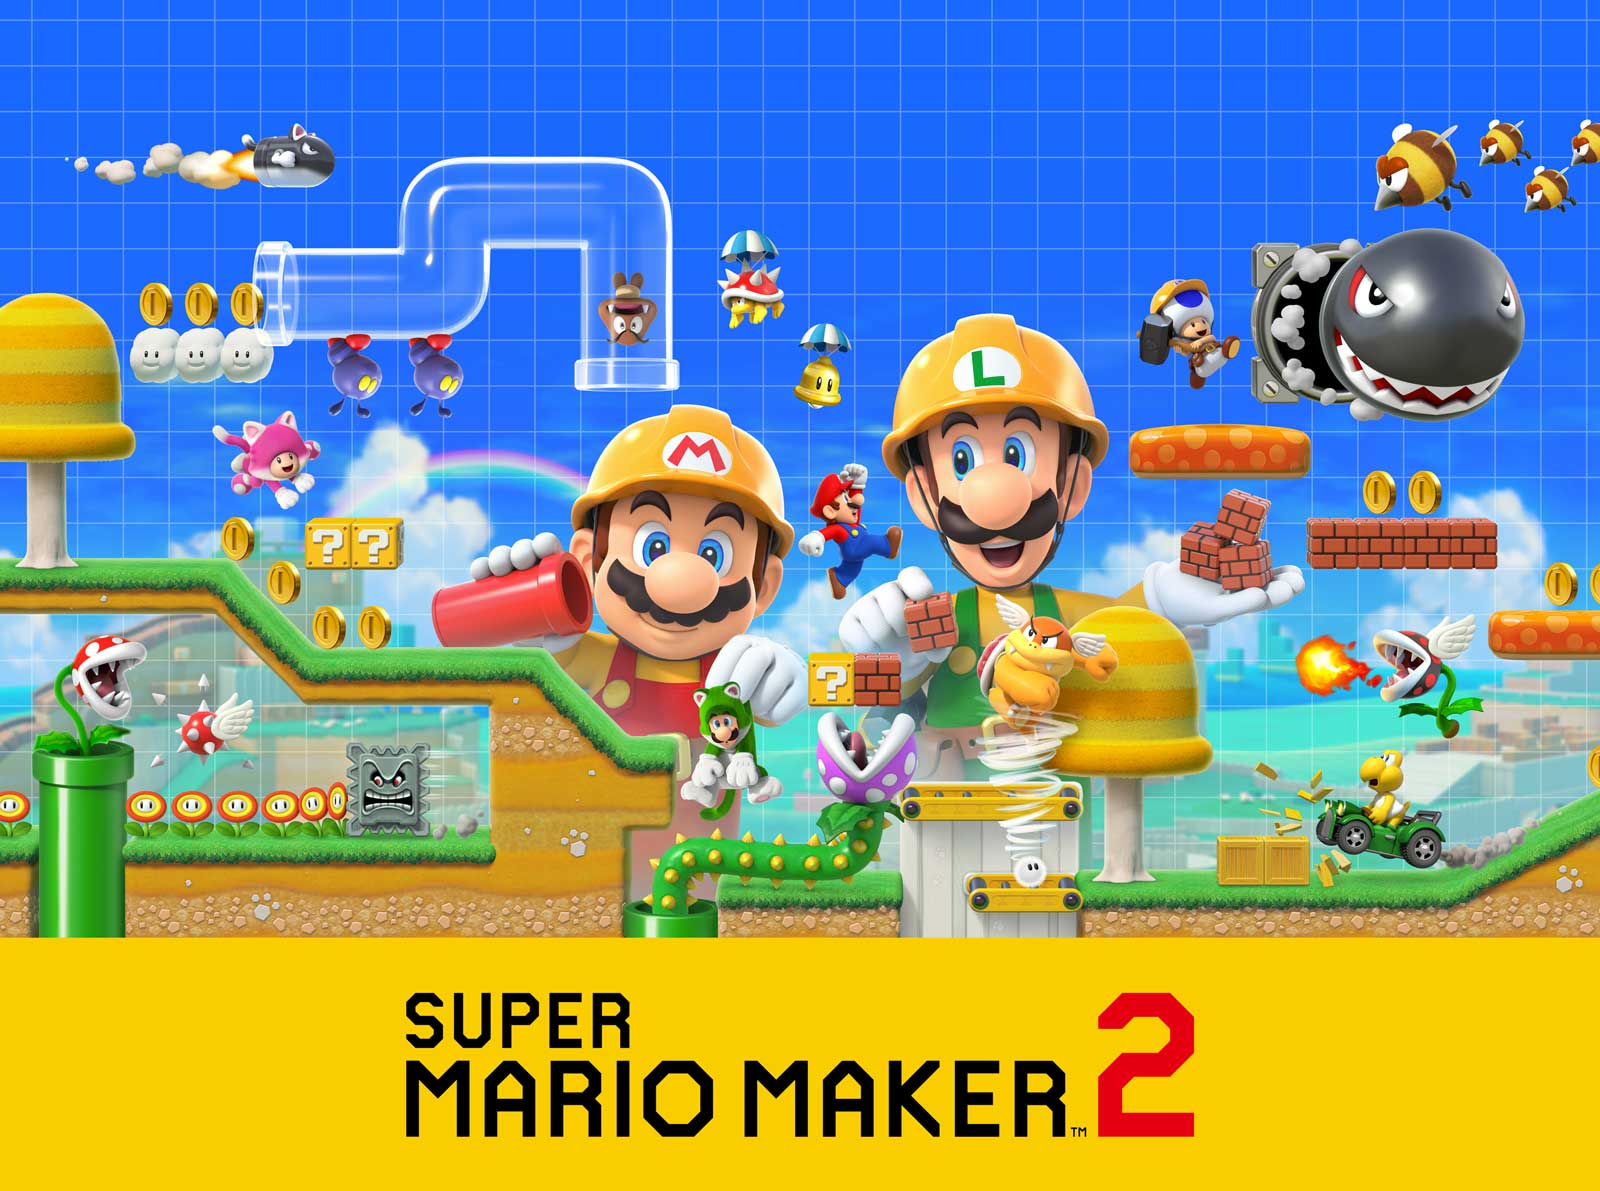 Super Mario Maker 2 on Switch is a flawless idea